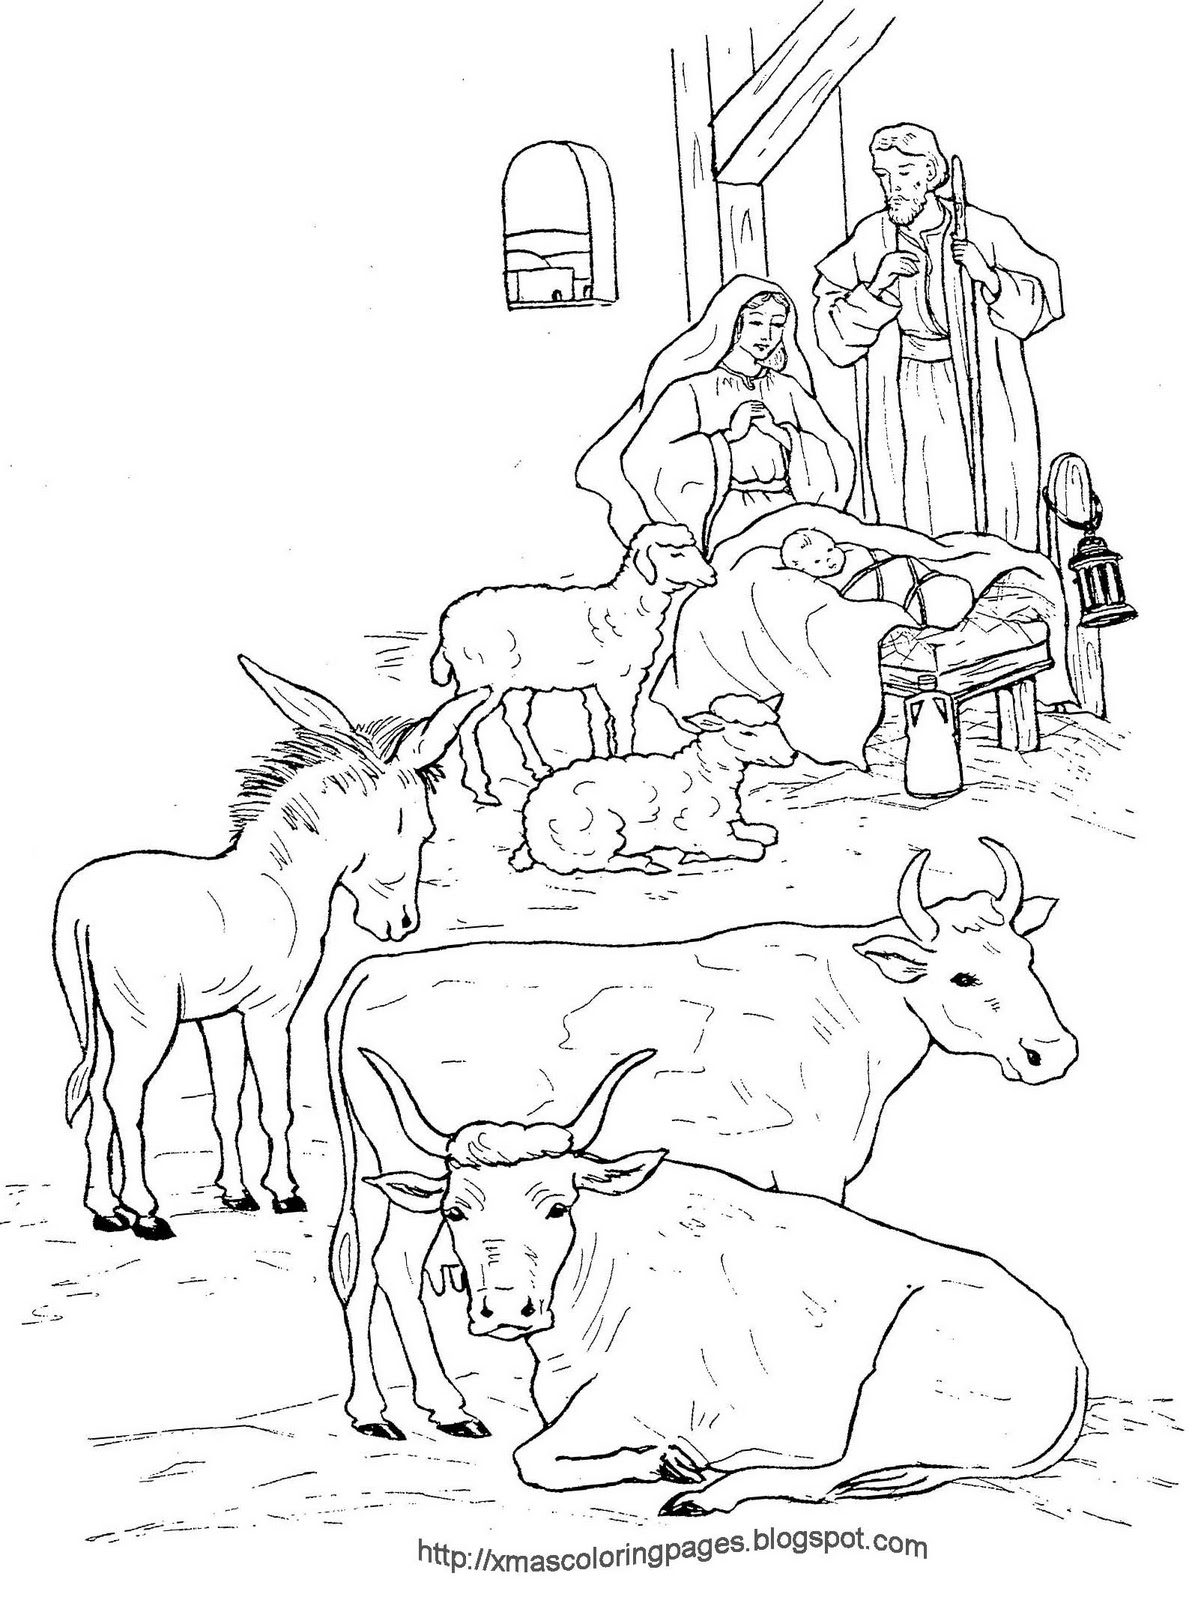 coloring pages baby jesus in manger baby jesus in manger drawing at getdrawings free download in manger jesus baby pages coloring